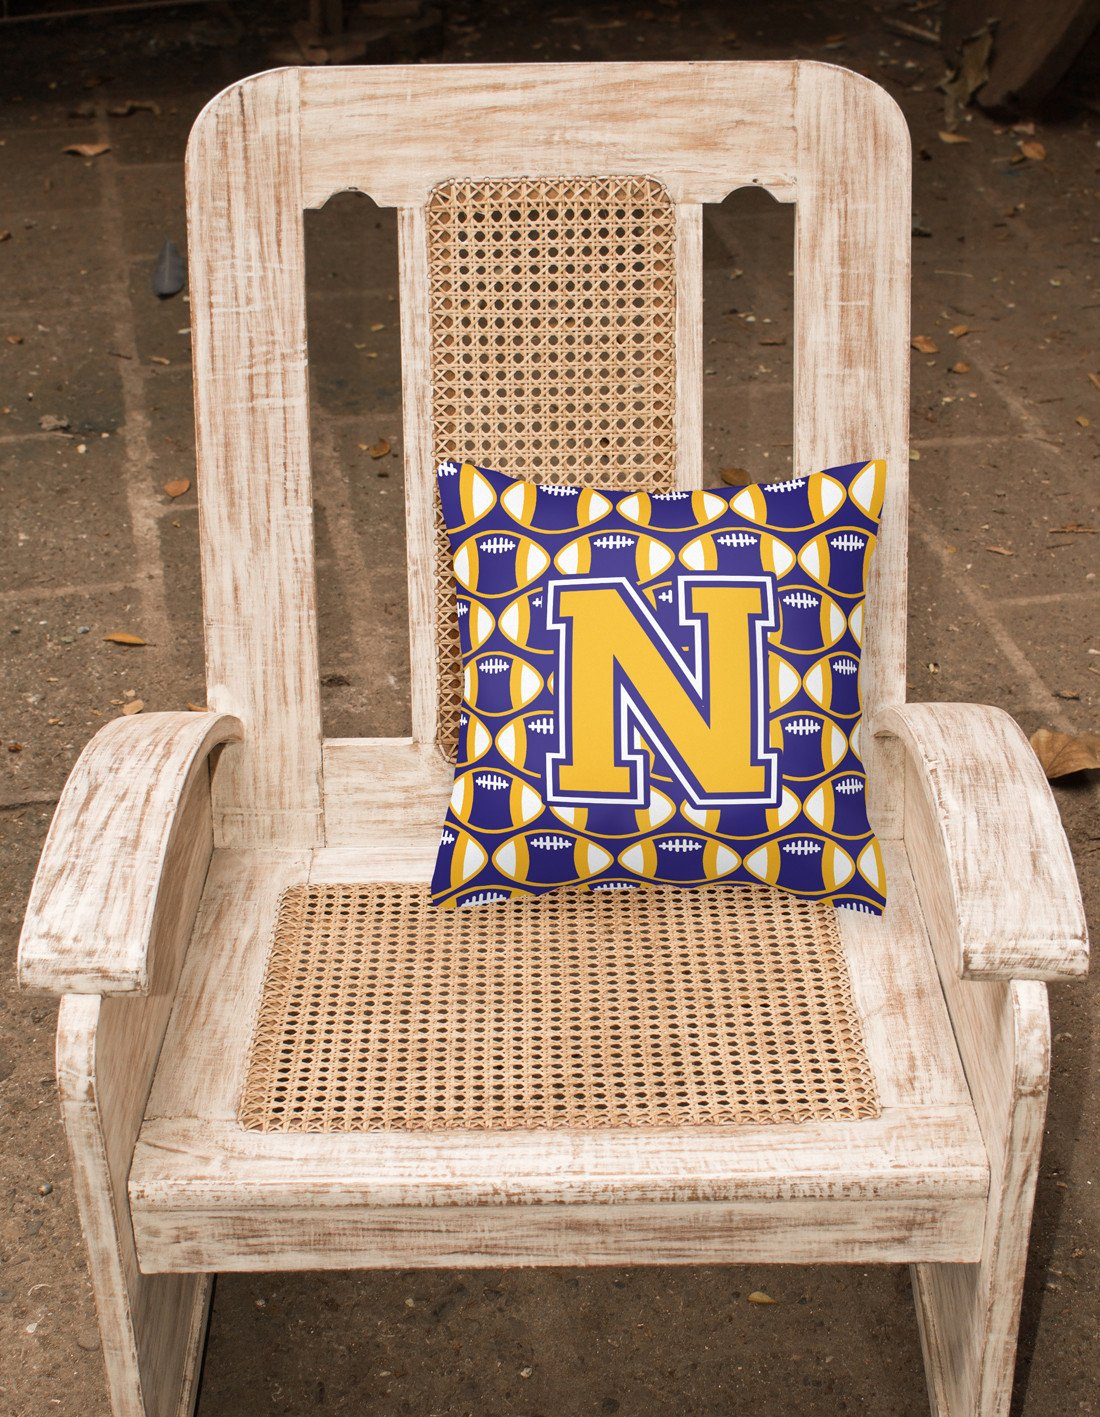 Letter N Football Purple and Gold Fabric Decorative Pillow CJ1064-NPW1414 by Caroline's Treasures